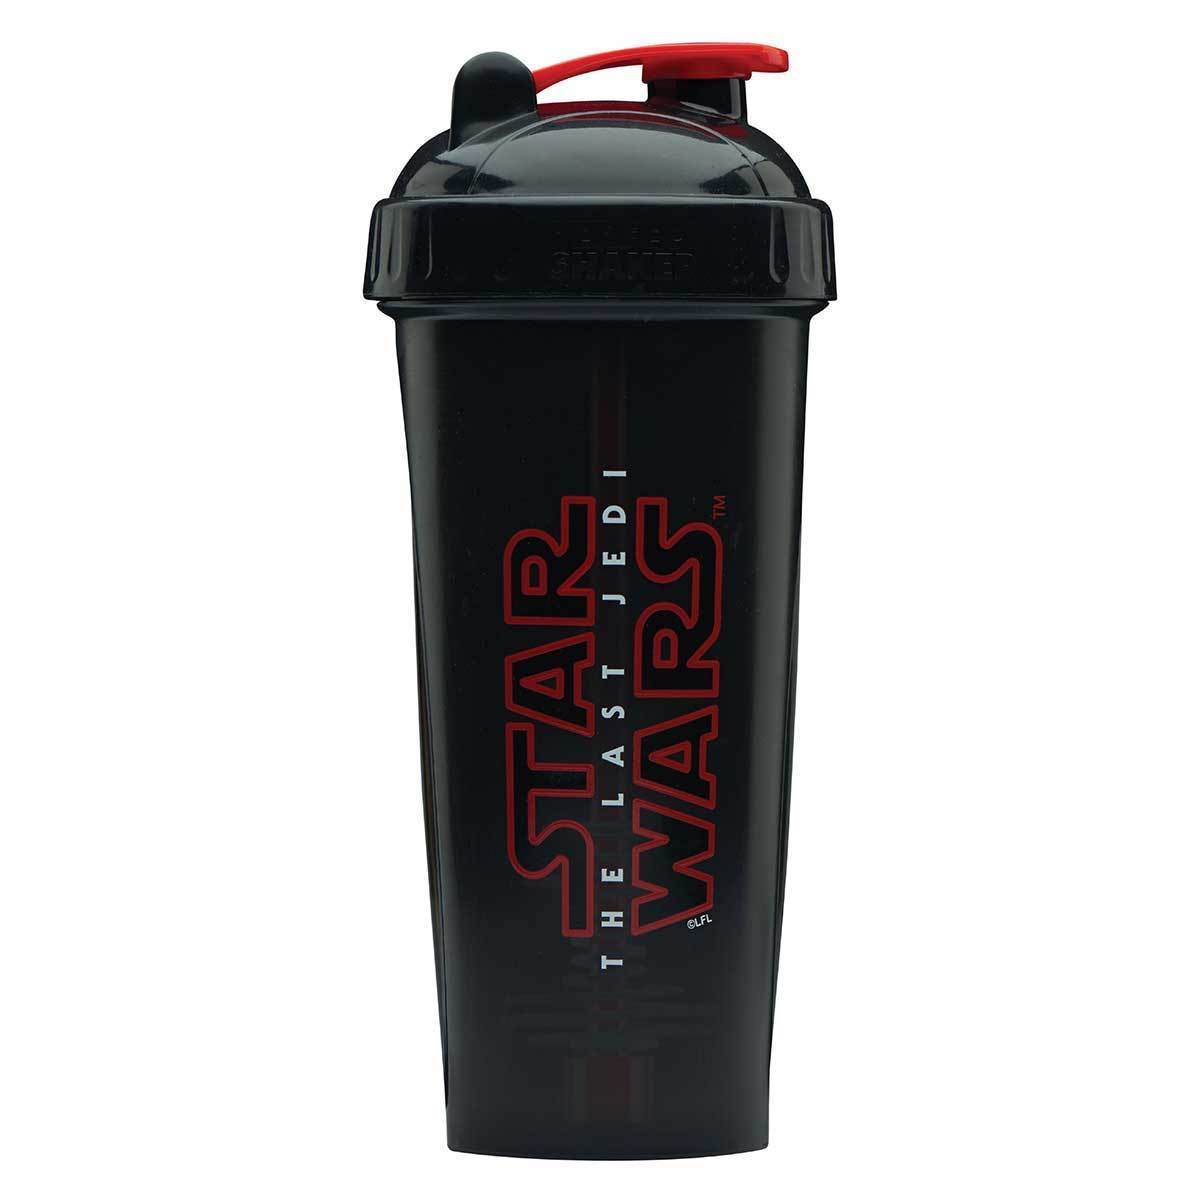 Star Wars Series Black Shaker Bottle 28oz Fitness Accessories and Apparel PerfectShaker  (1059338518571)